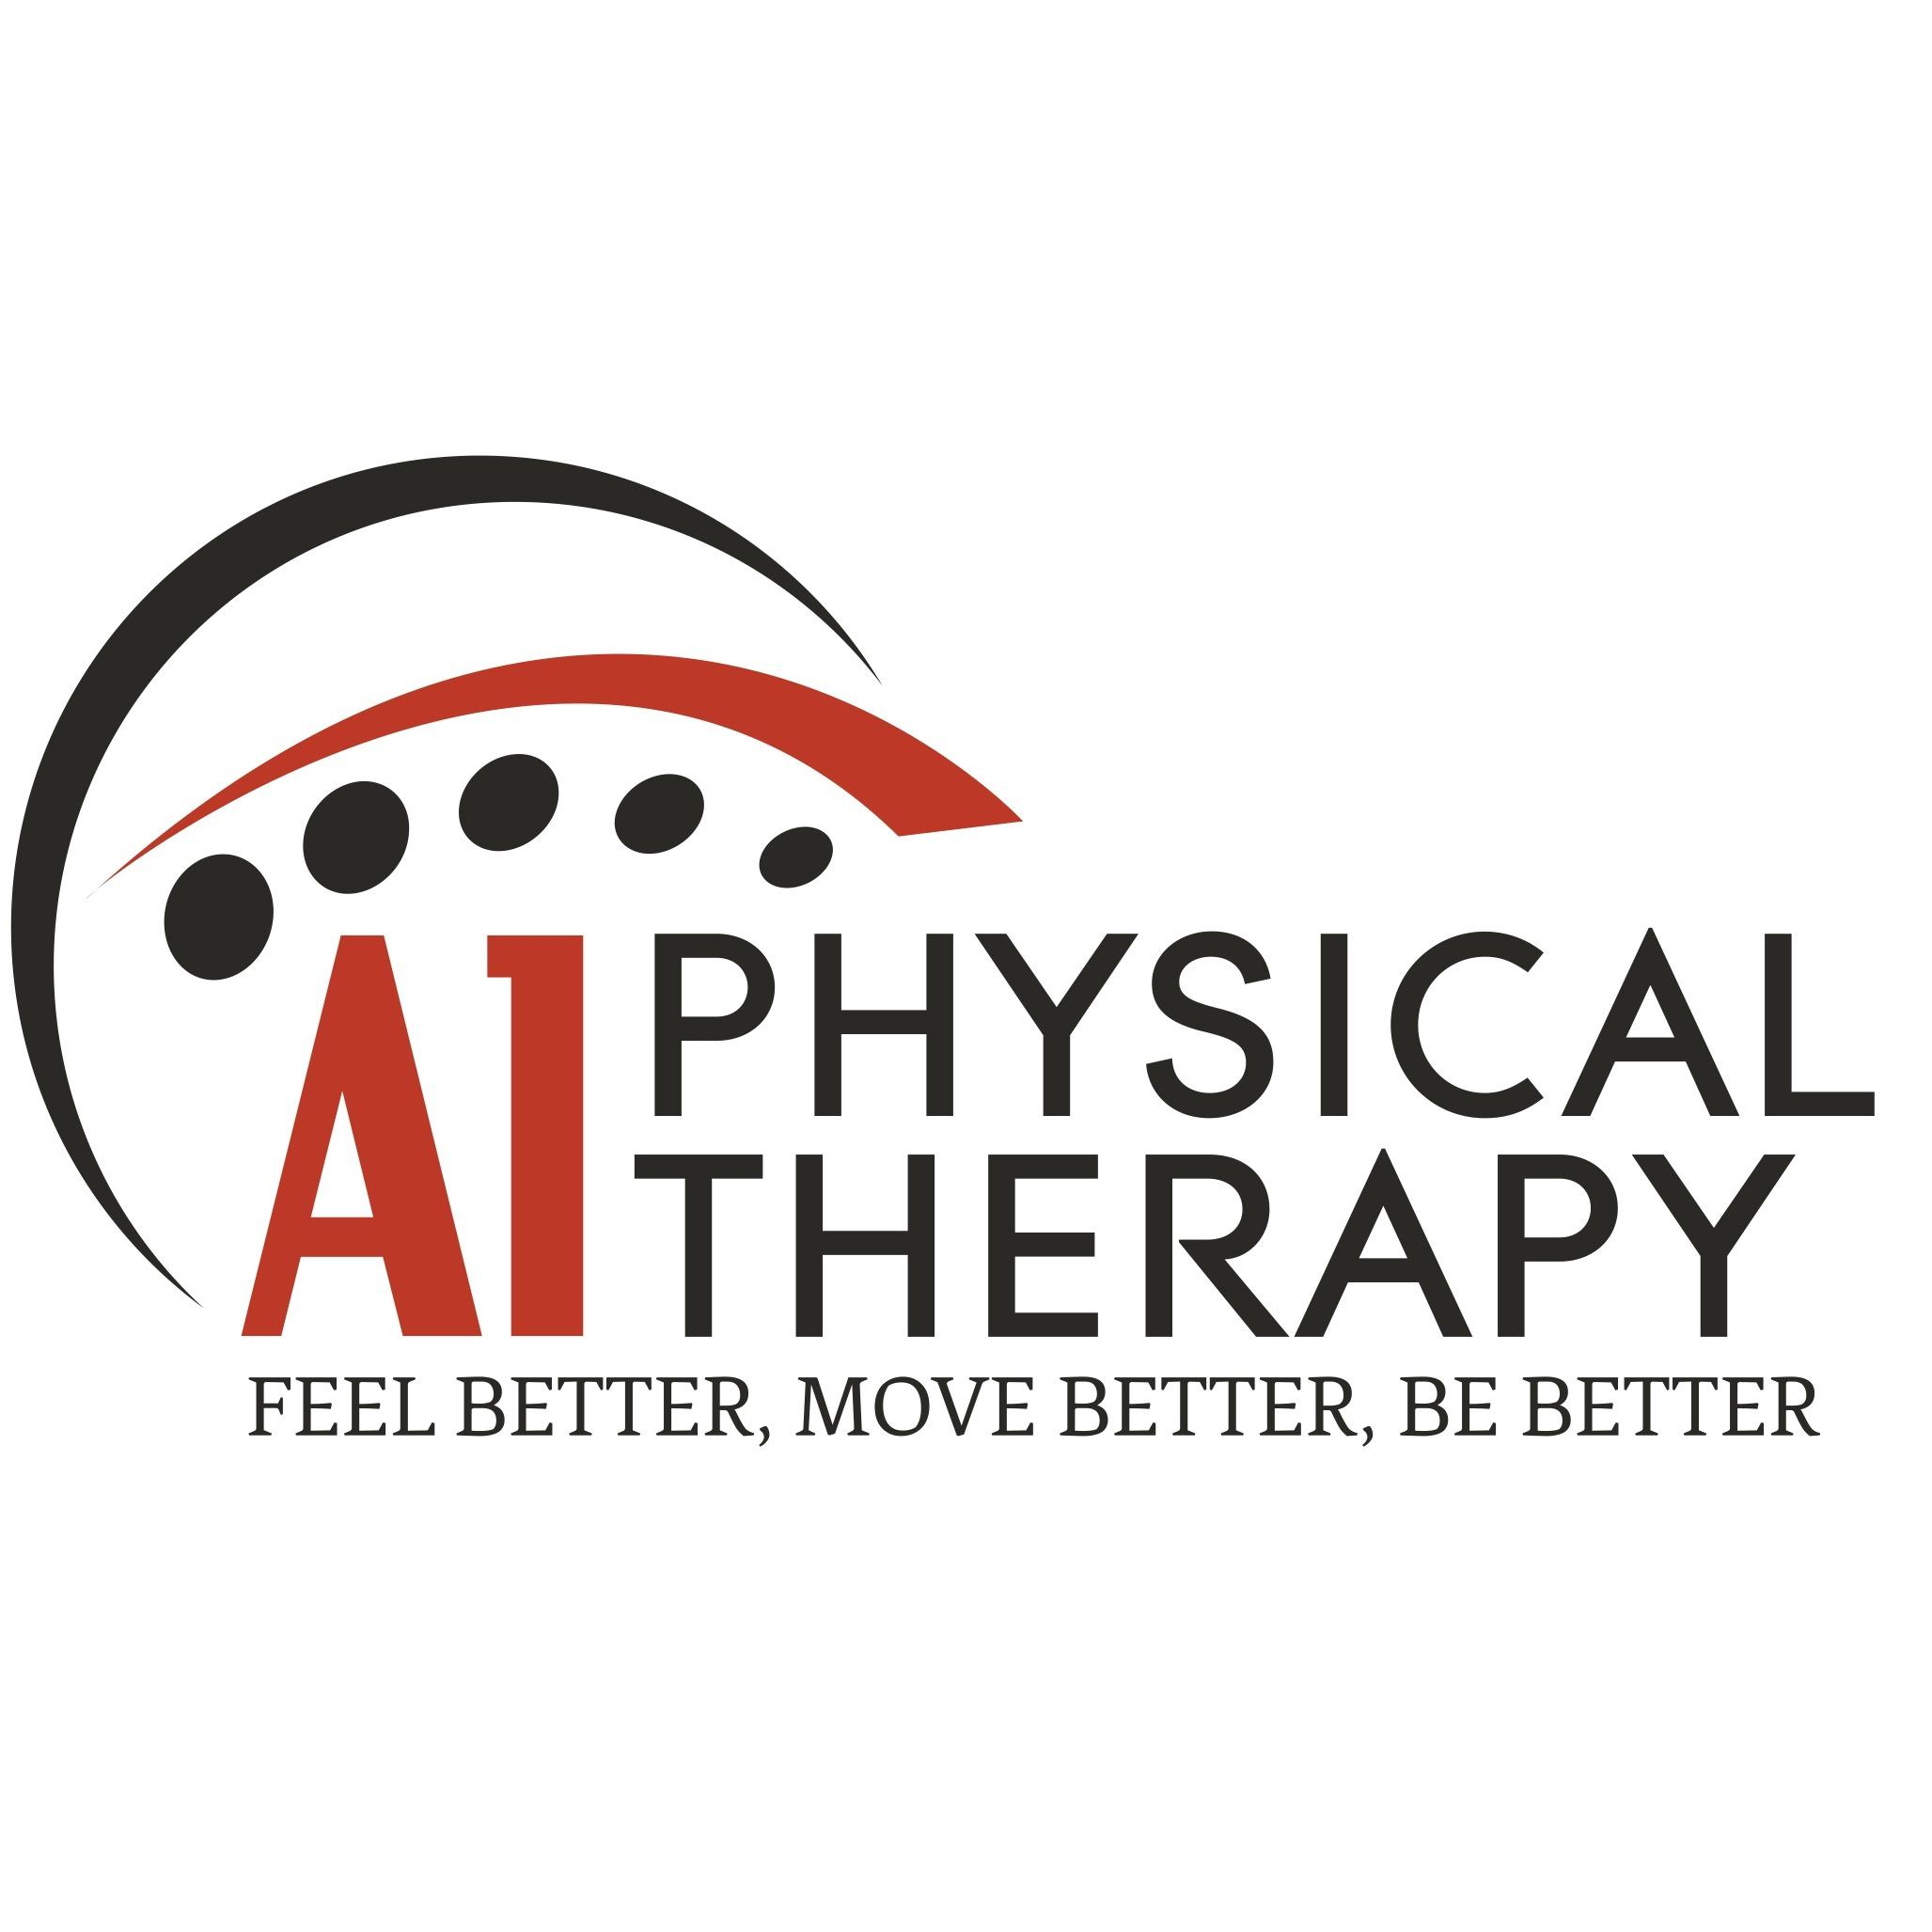 A1 Physical Therapy